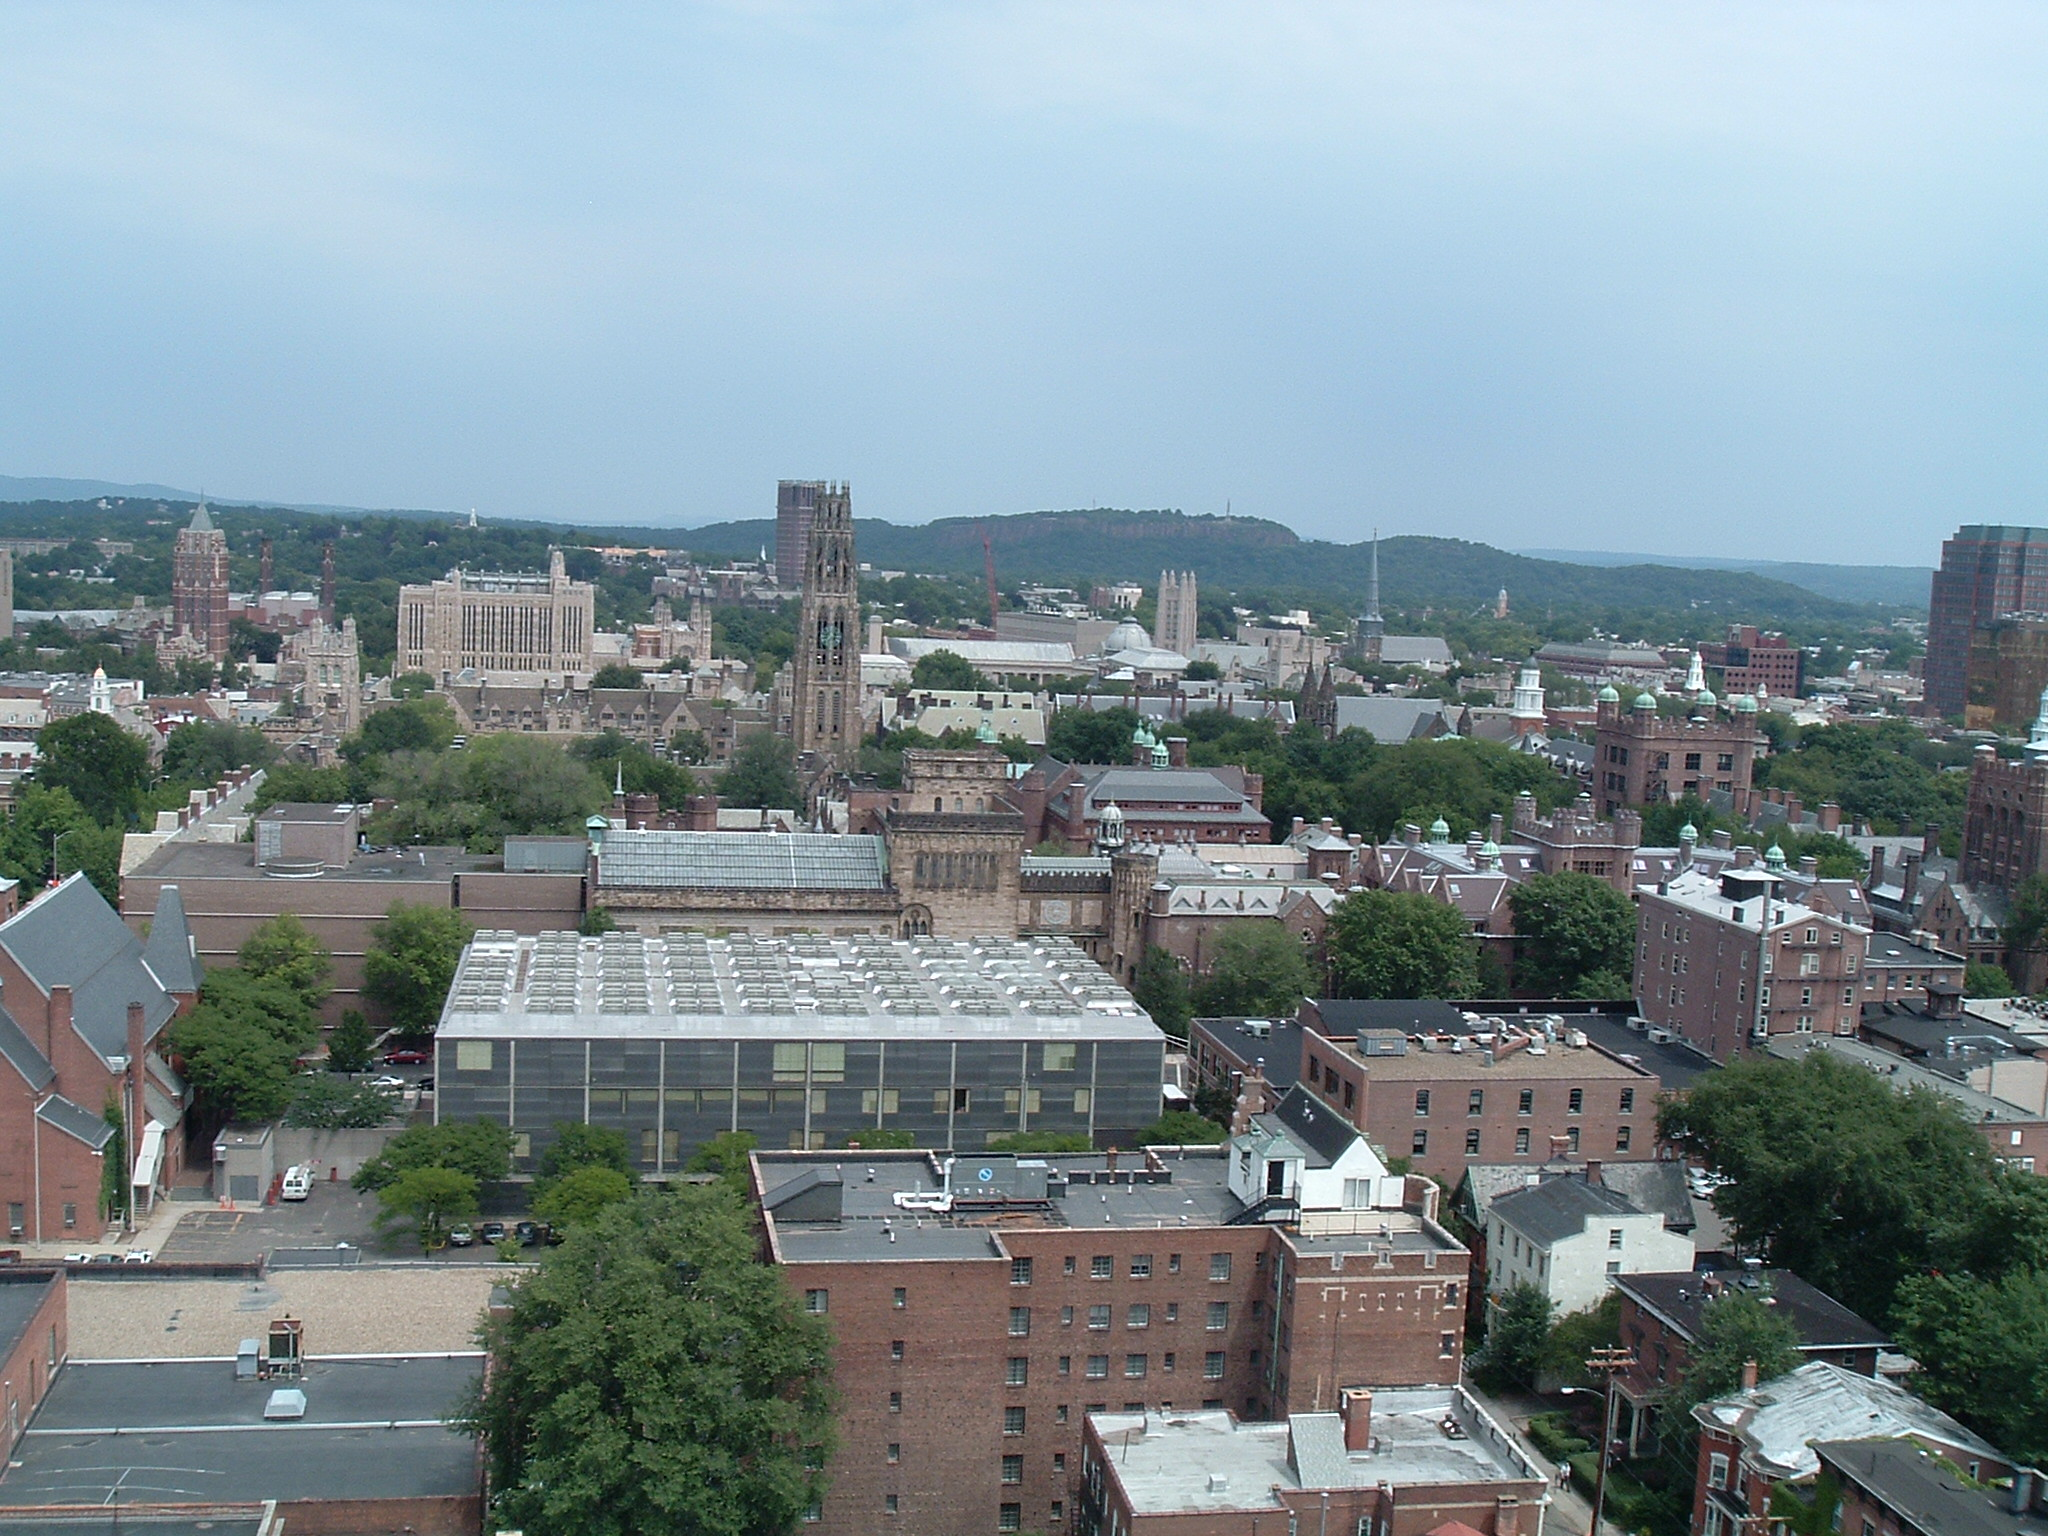 File:New Haven.JPG - Wikimedia Commons